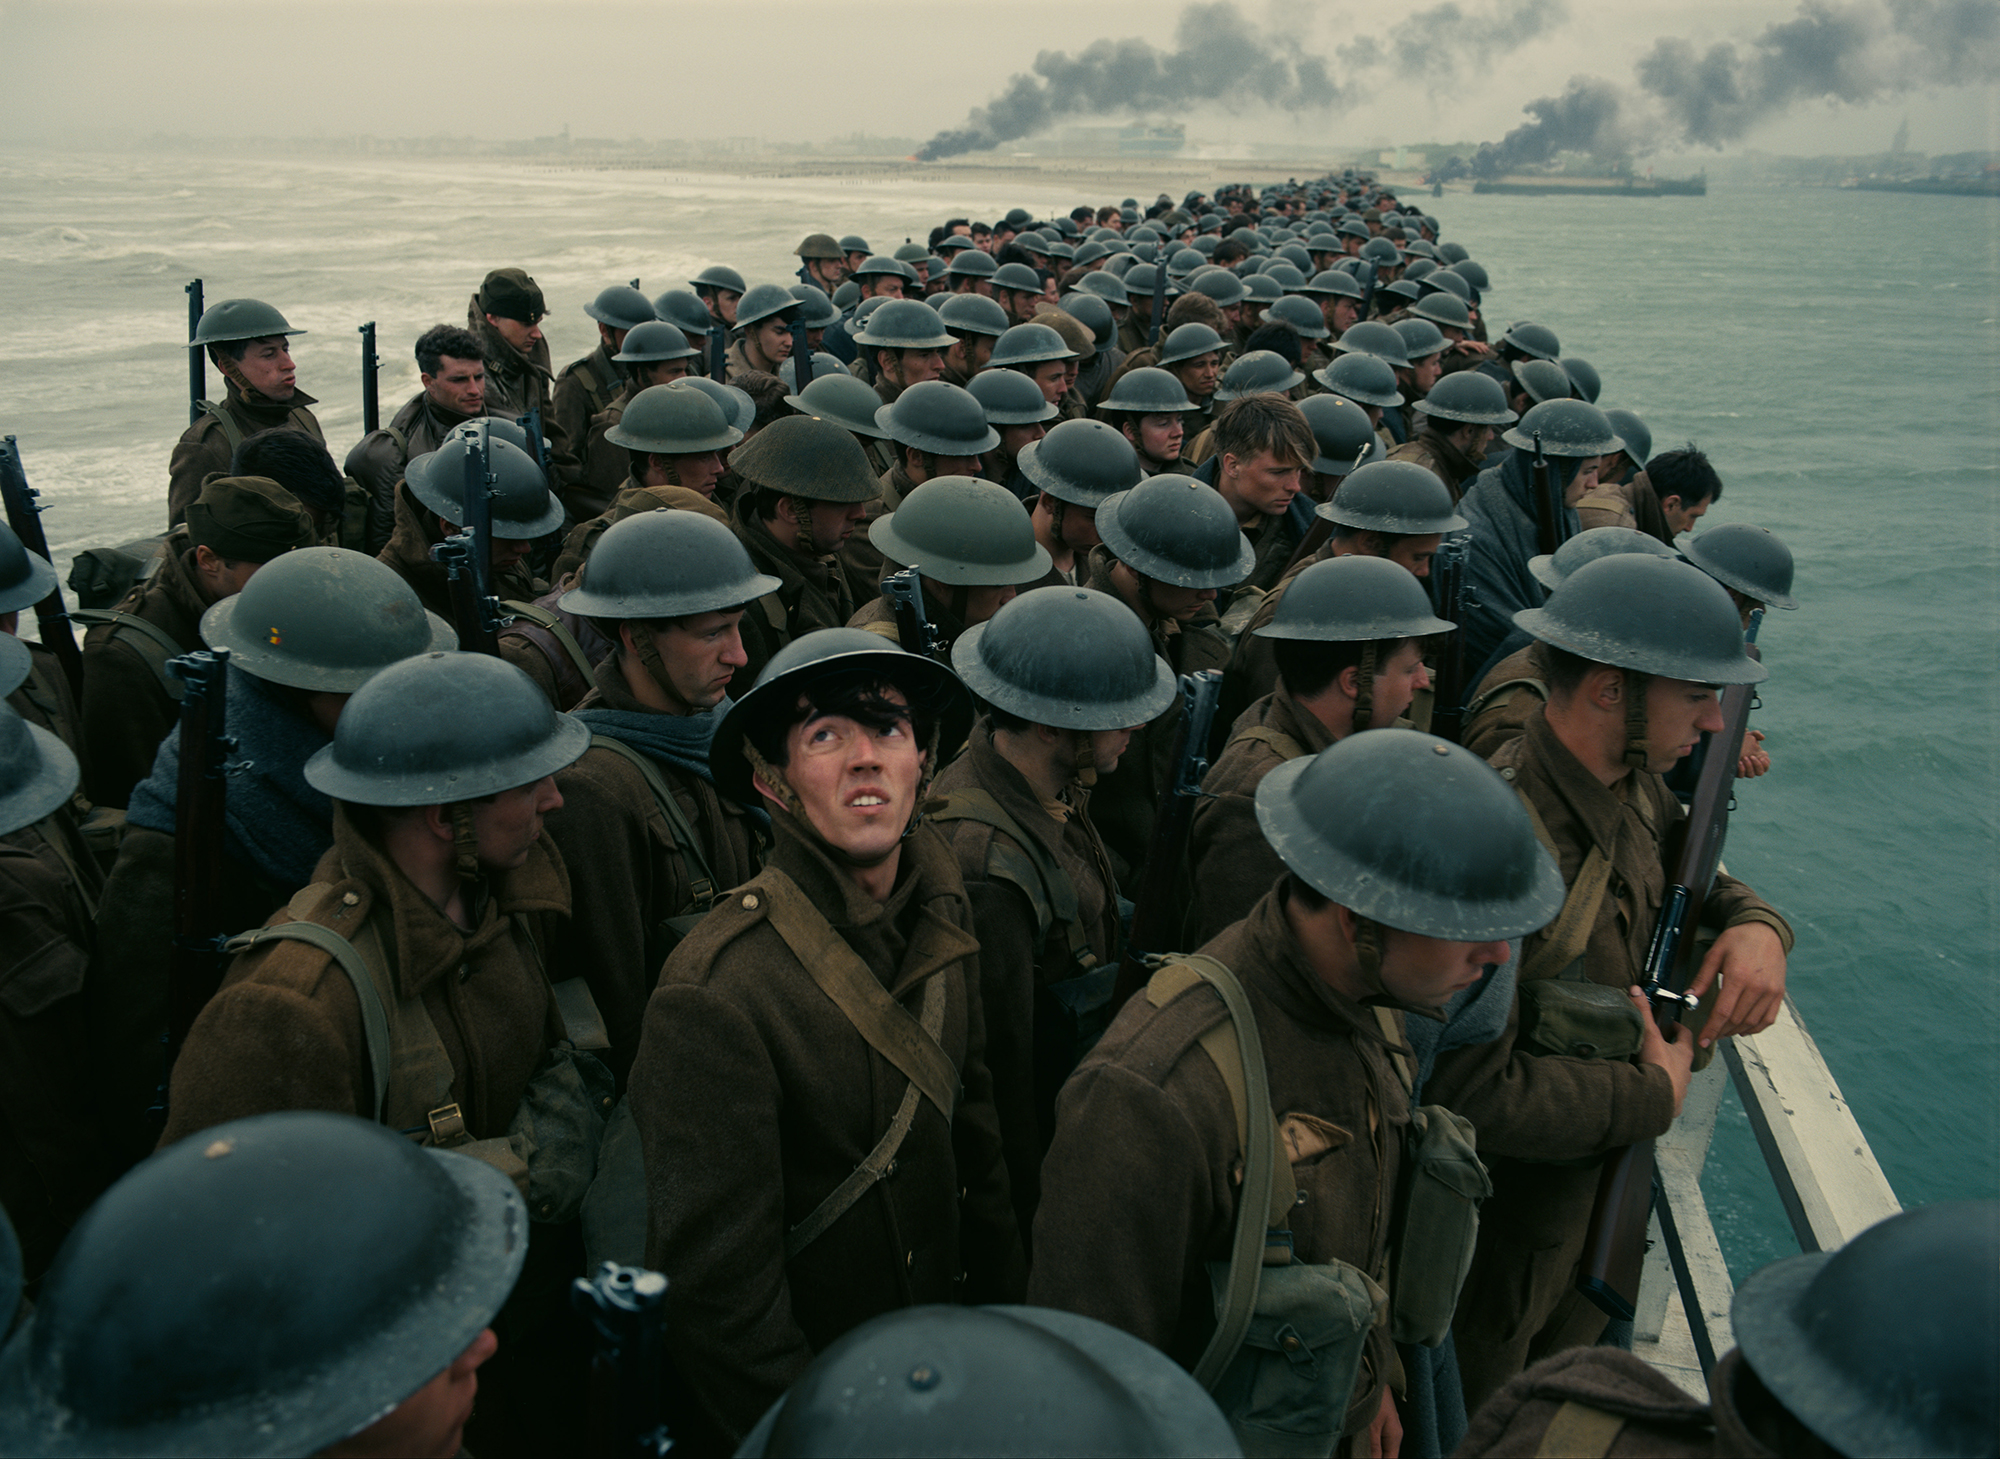 Dunkirk, out July 21, is director Christopher Nolan's tenth feature